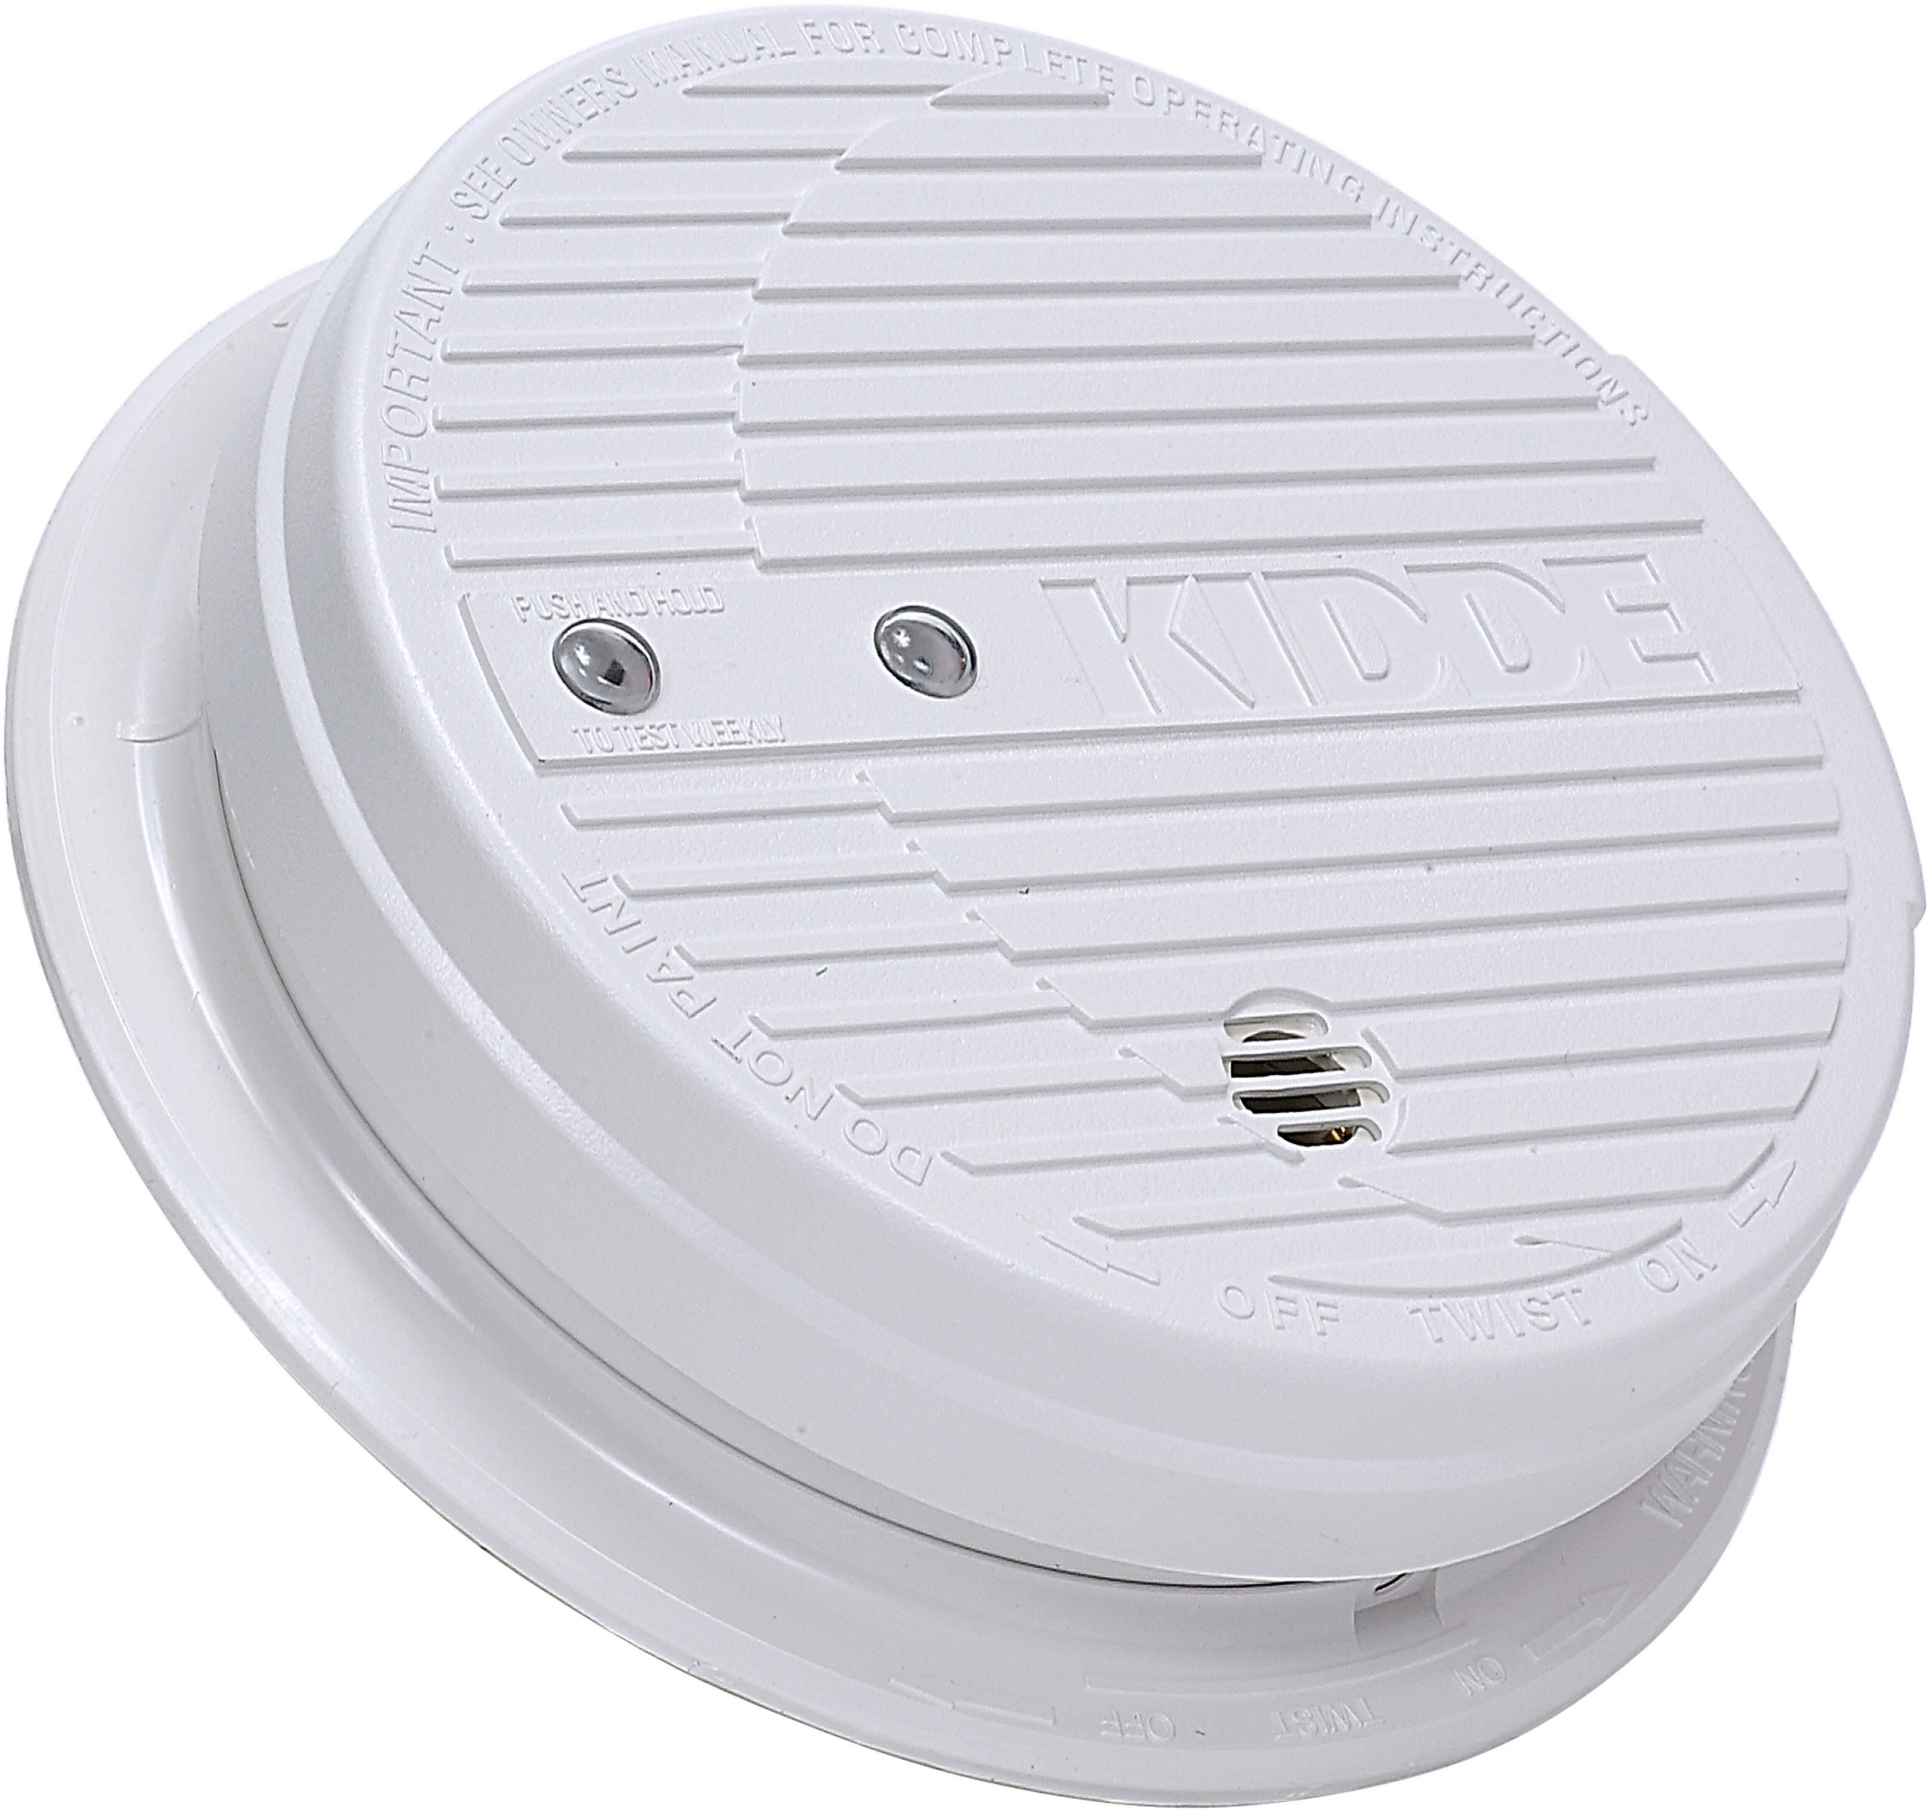 How To Reset Smoke Detectors Home Guides Sf Gate Wiring A House For Alarms